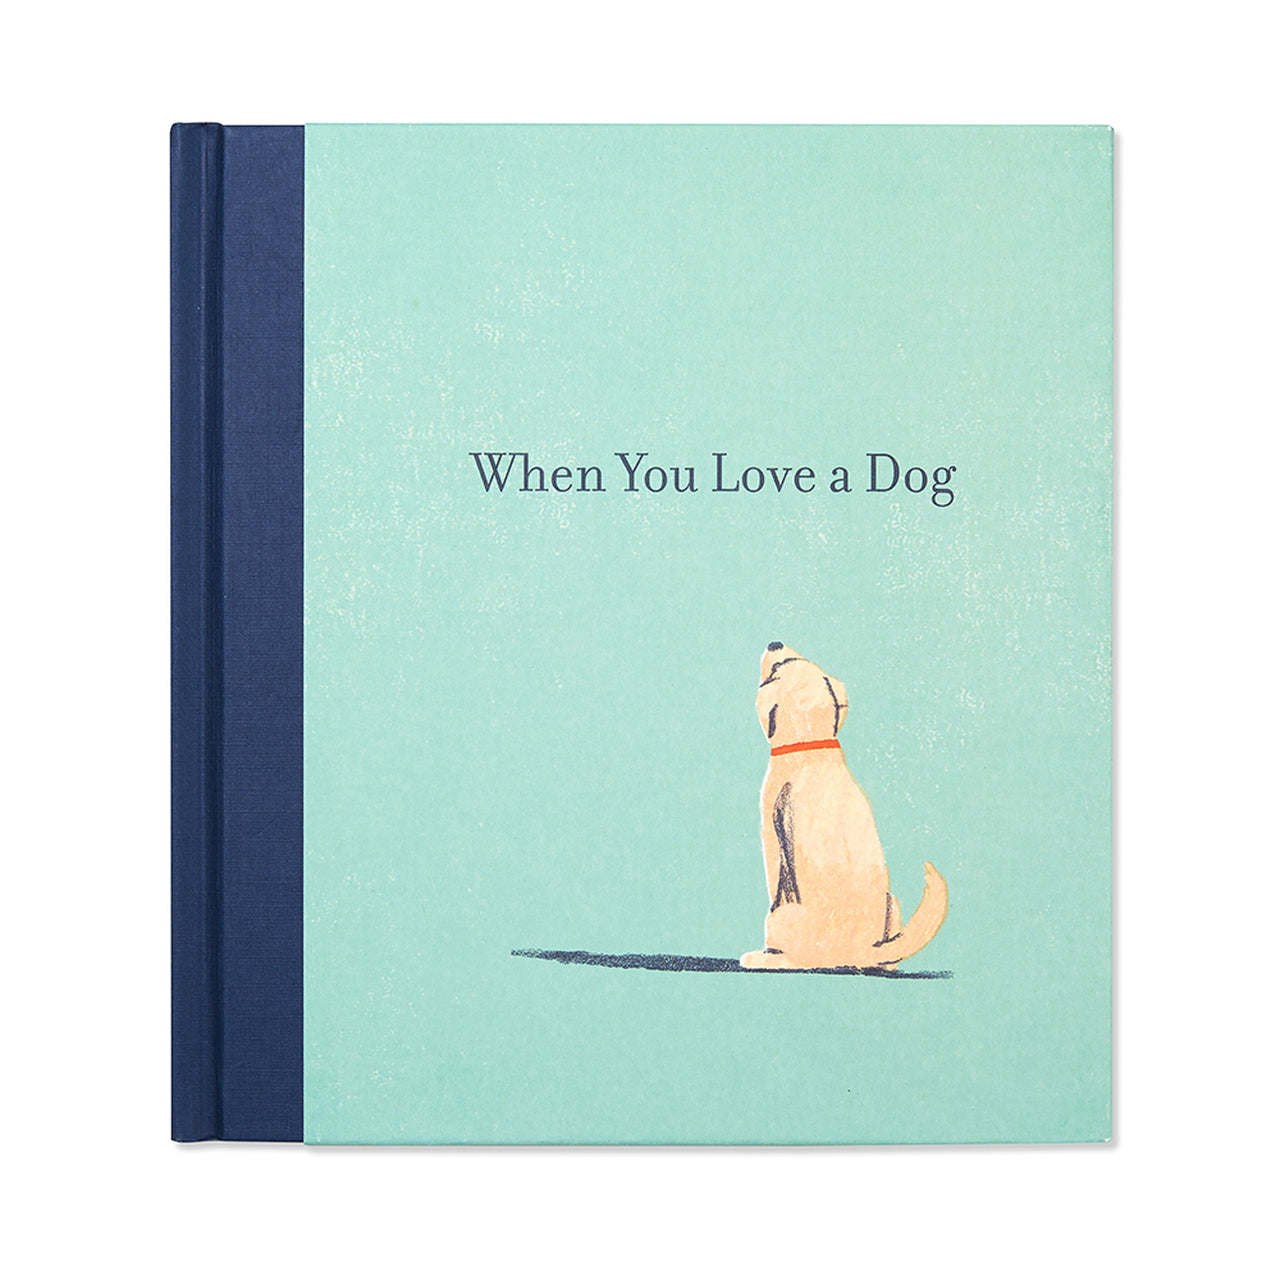 When You Love A Dog Book -Picnic-sf